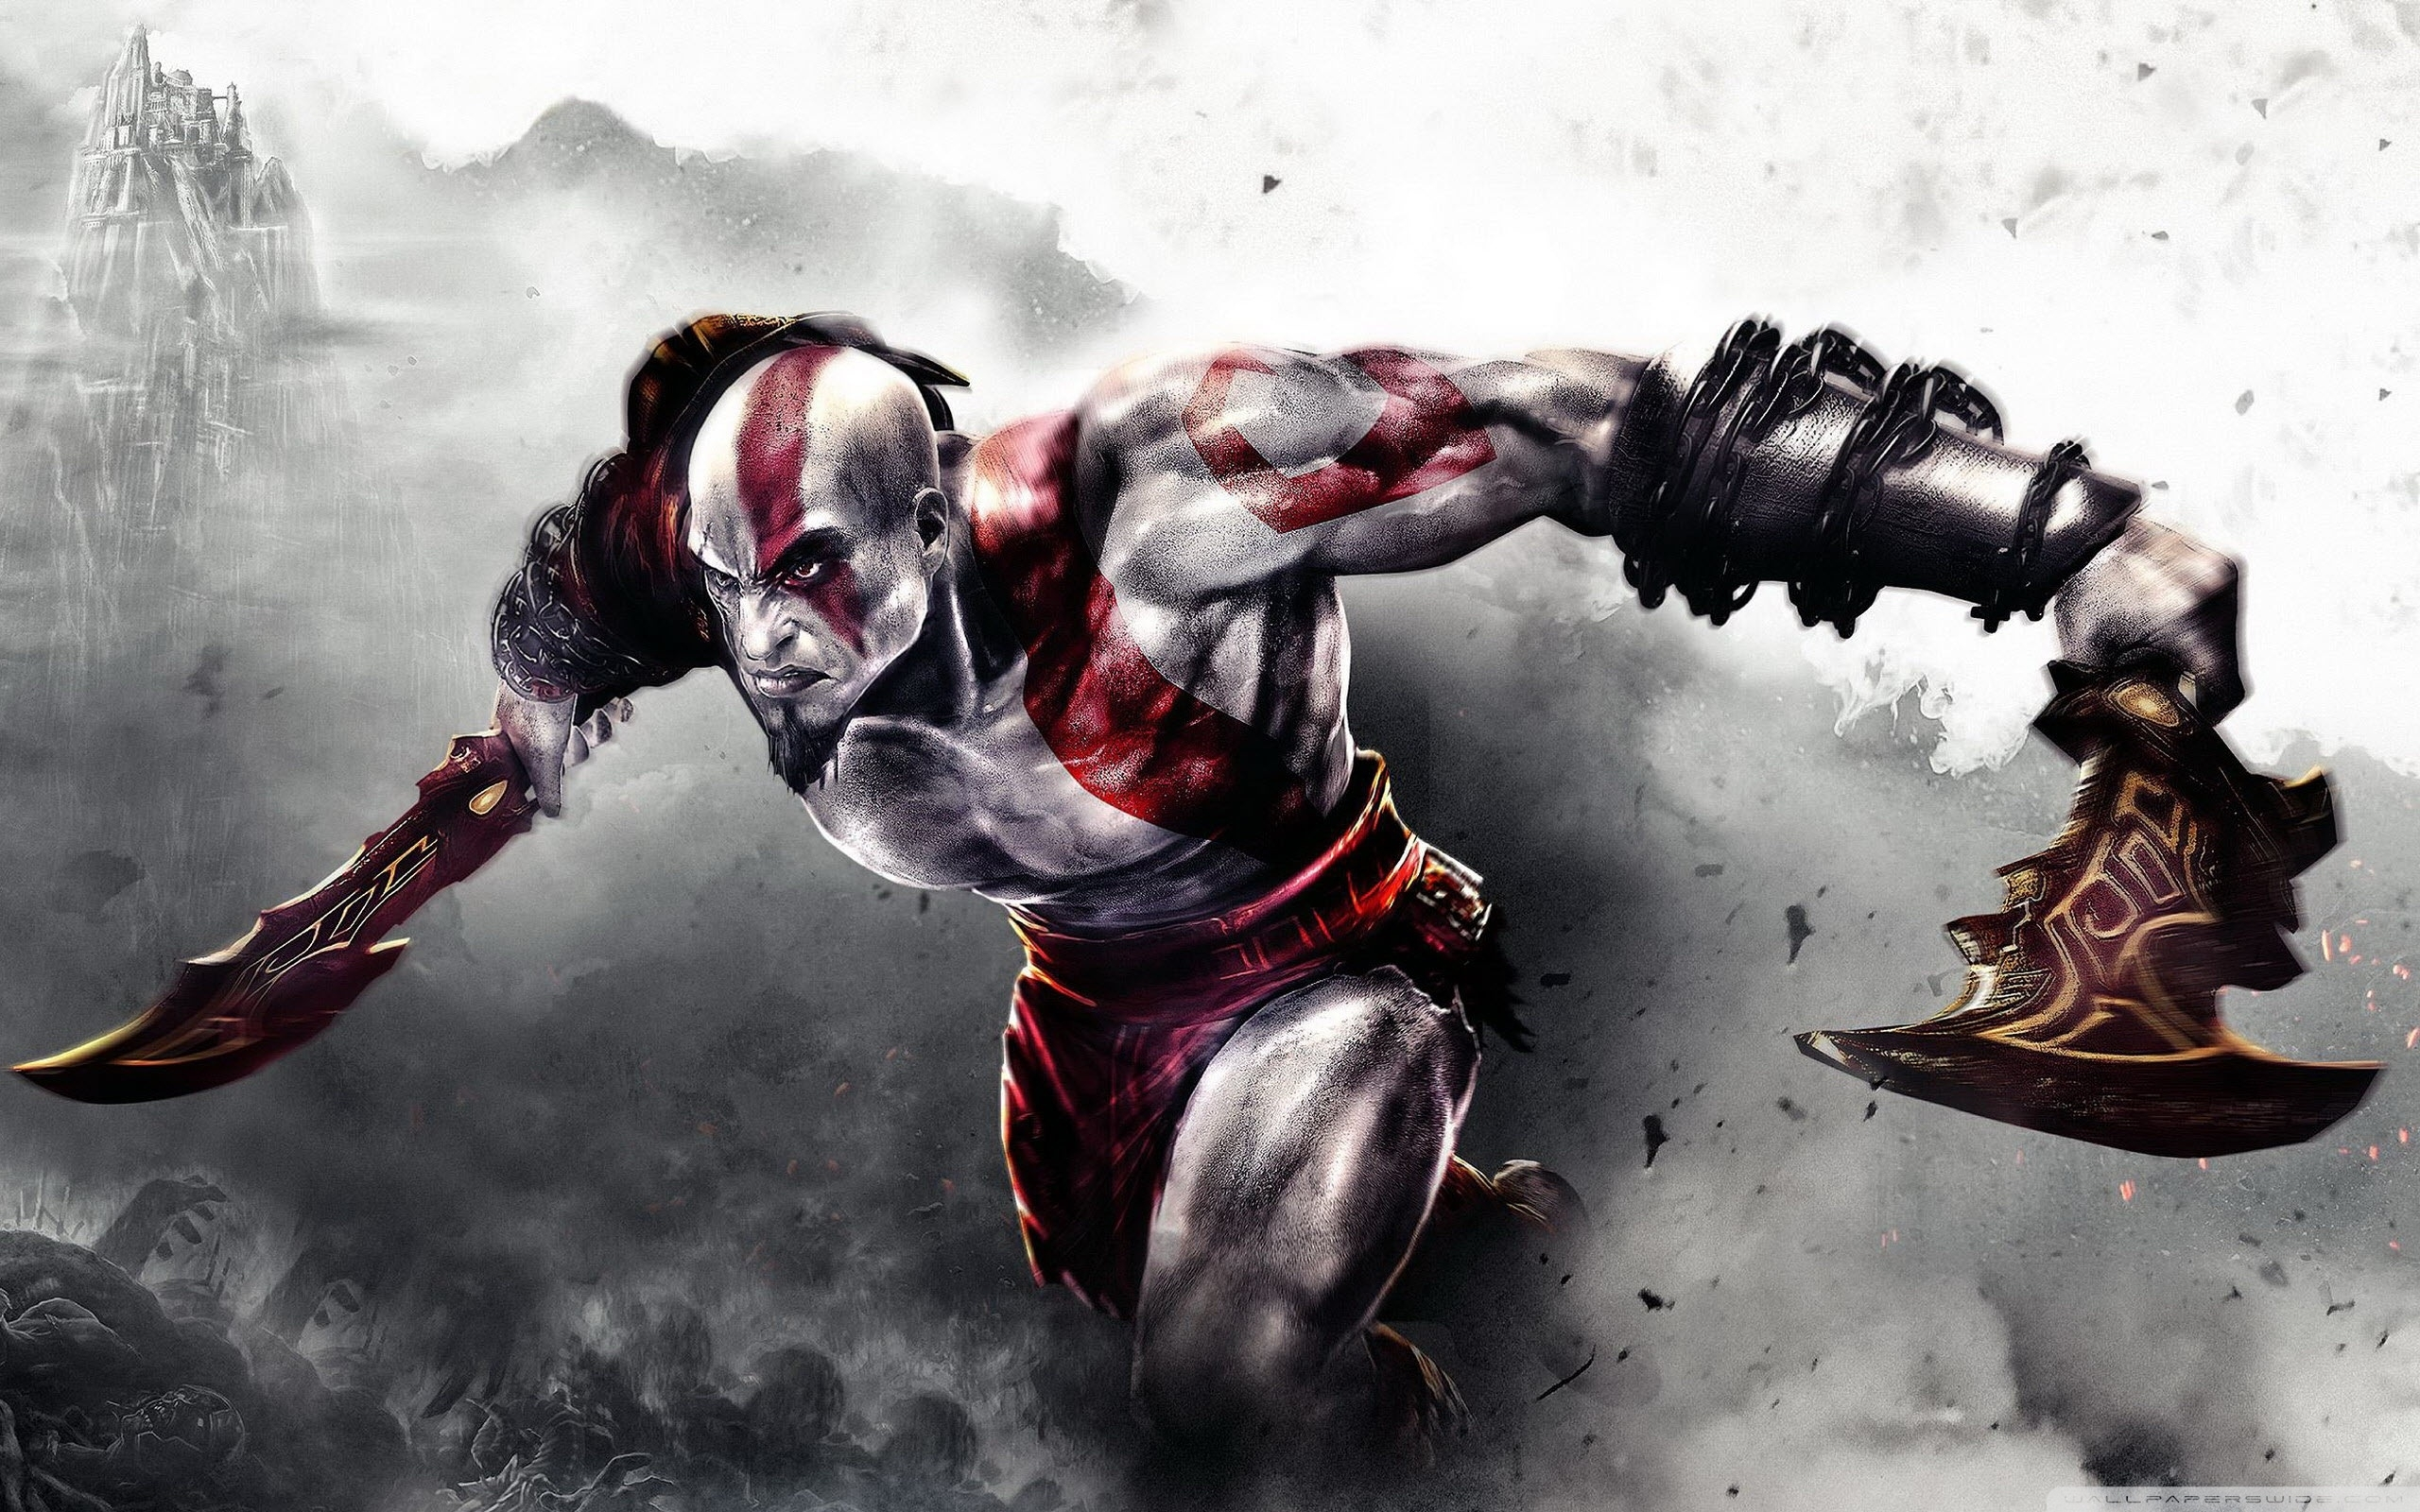 wallpaperswide ❤ god of war hd desktop wallpapers for 4k ultra